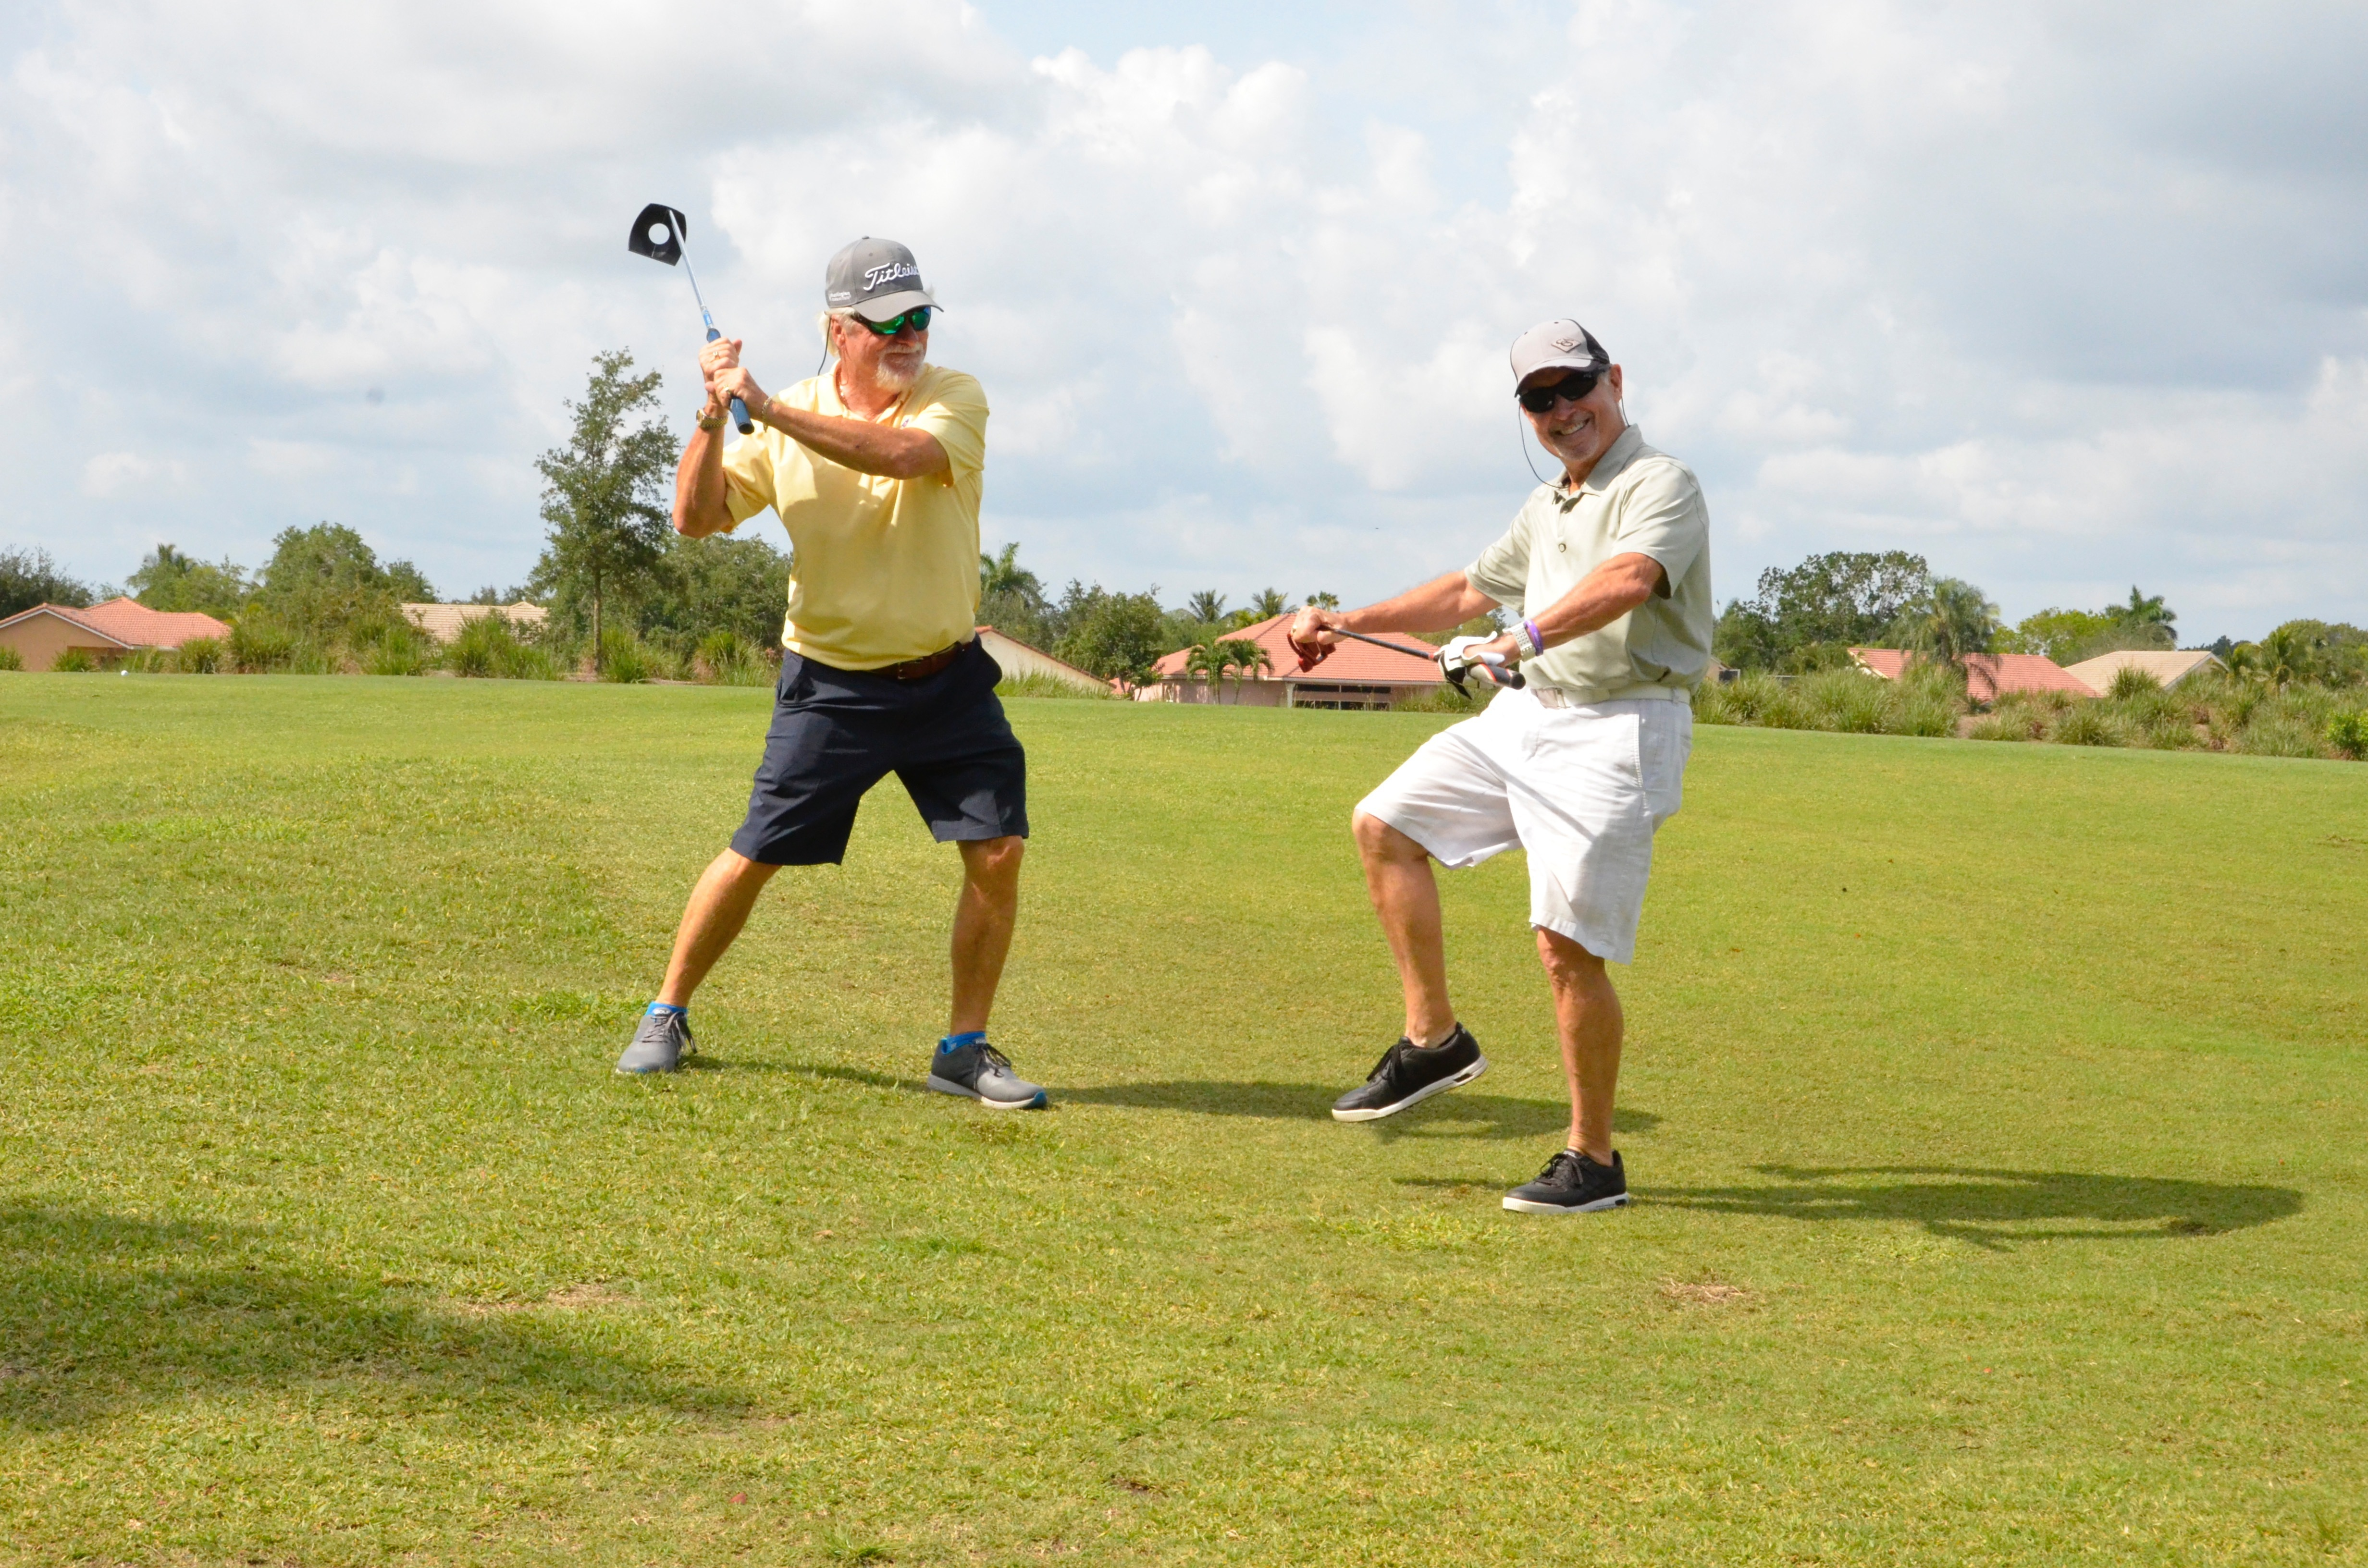 33rd Annual Rotary Golf Classic Sponsored by FHVLEGAL.COM gallery image #85